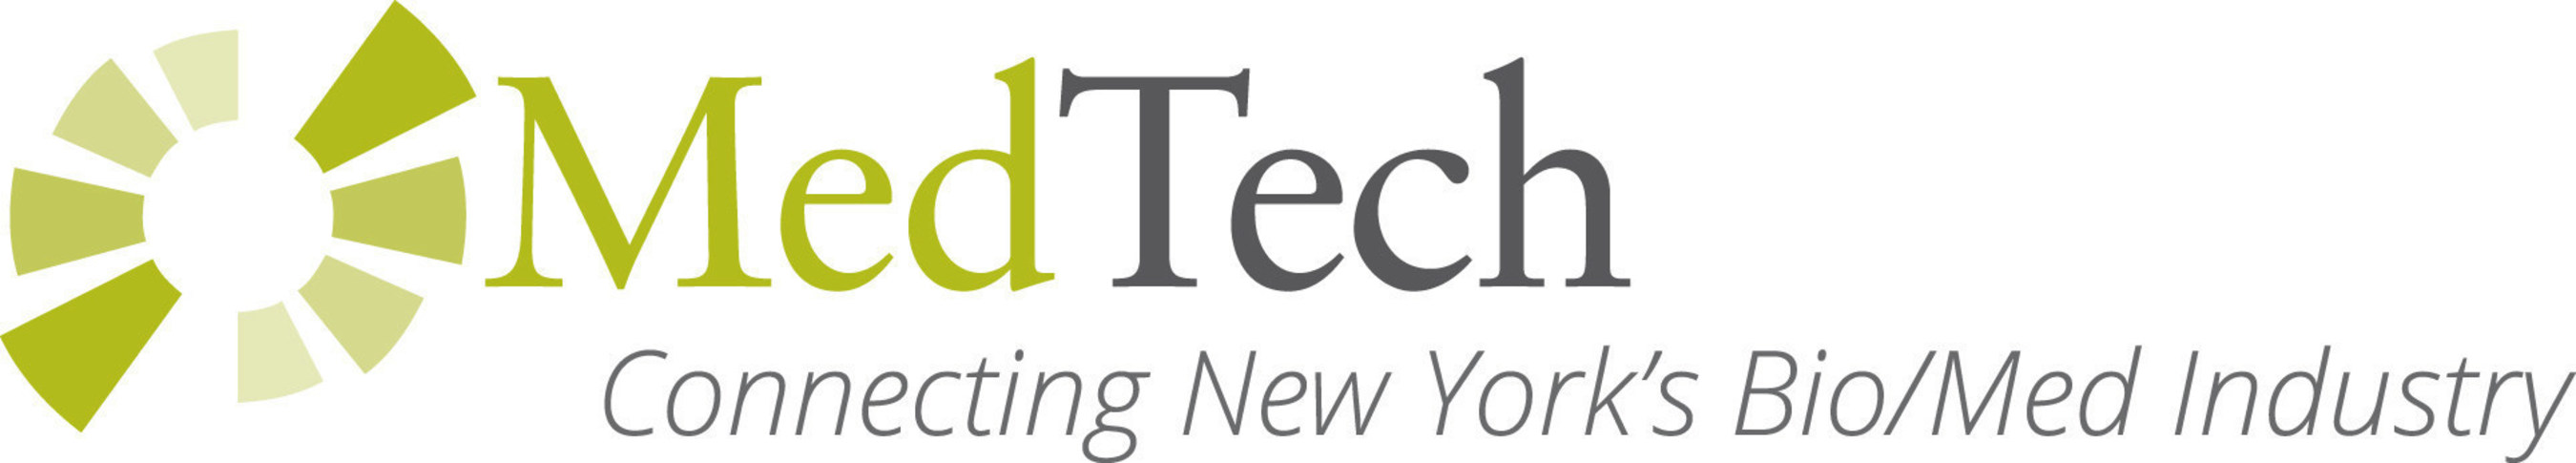 MedTech Association connects New York State's Bio/Med industry through collaboration, education and advocacy